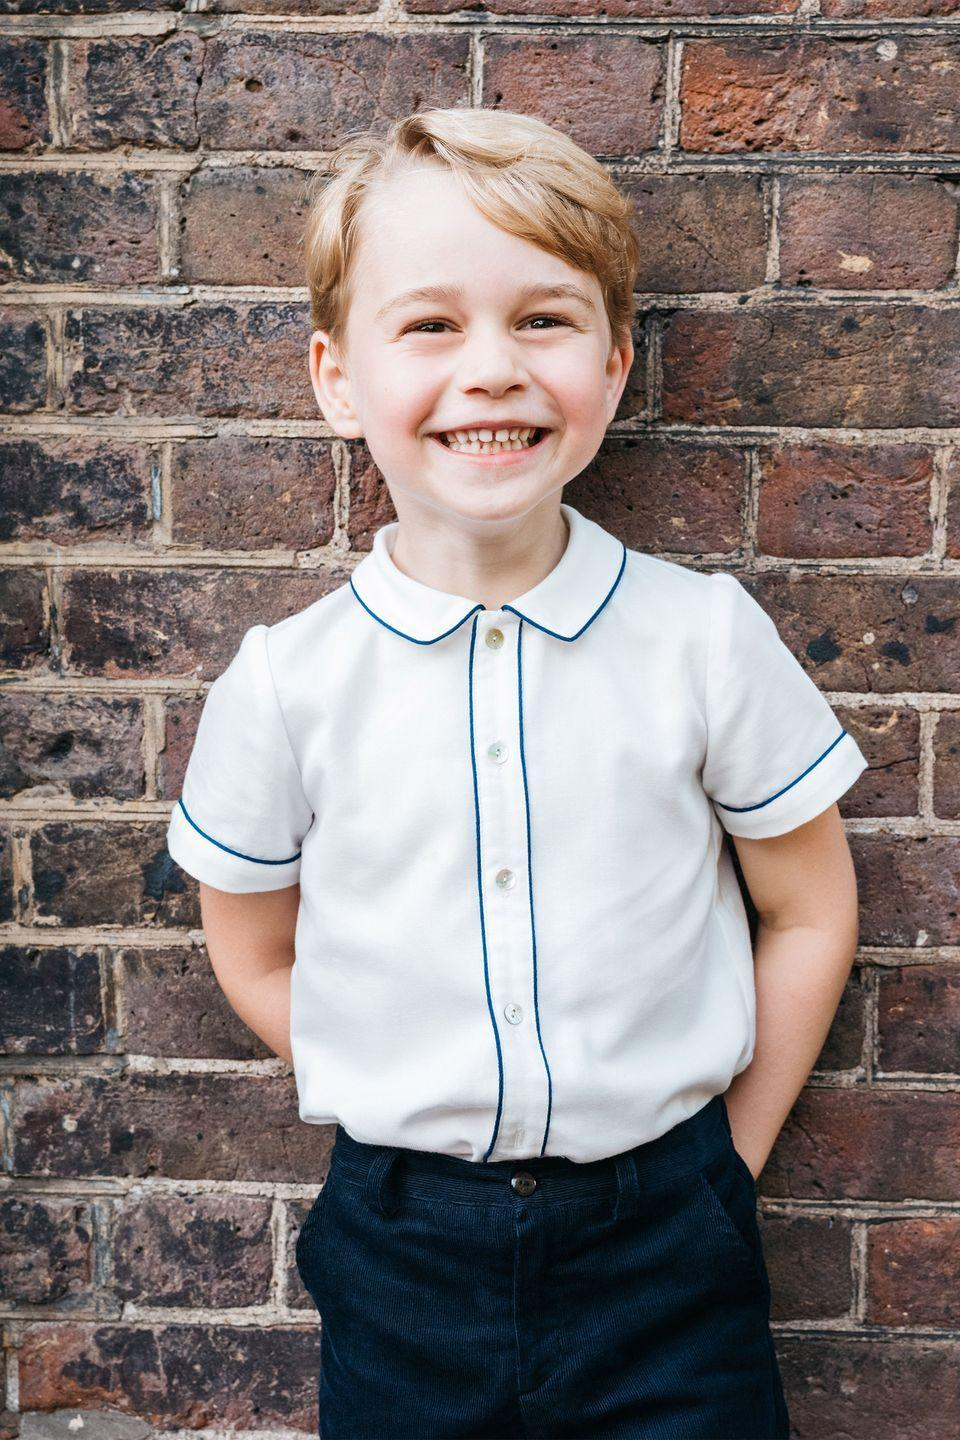 <p>Happy fifth Birthday, Prince George! The adorable royal is all smiles in his official birthday portrait released by Kensington Palace. </p>